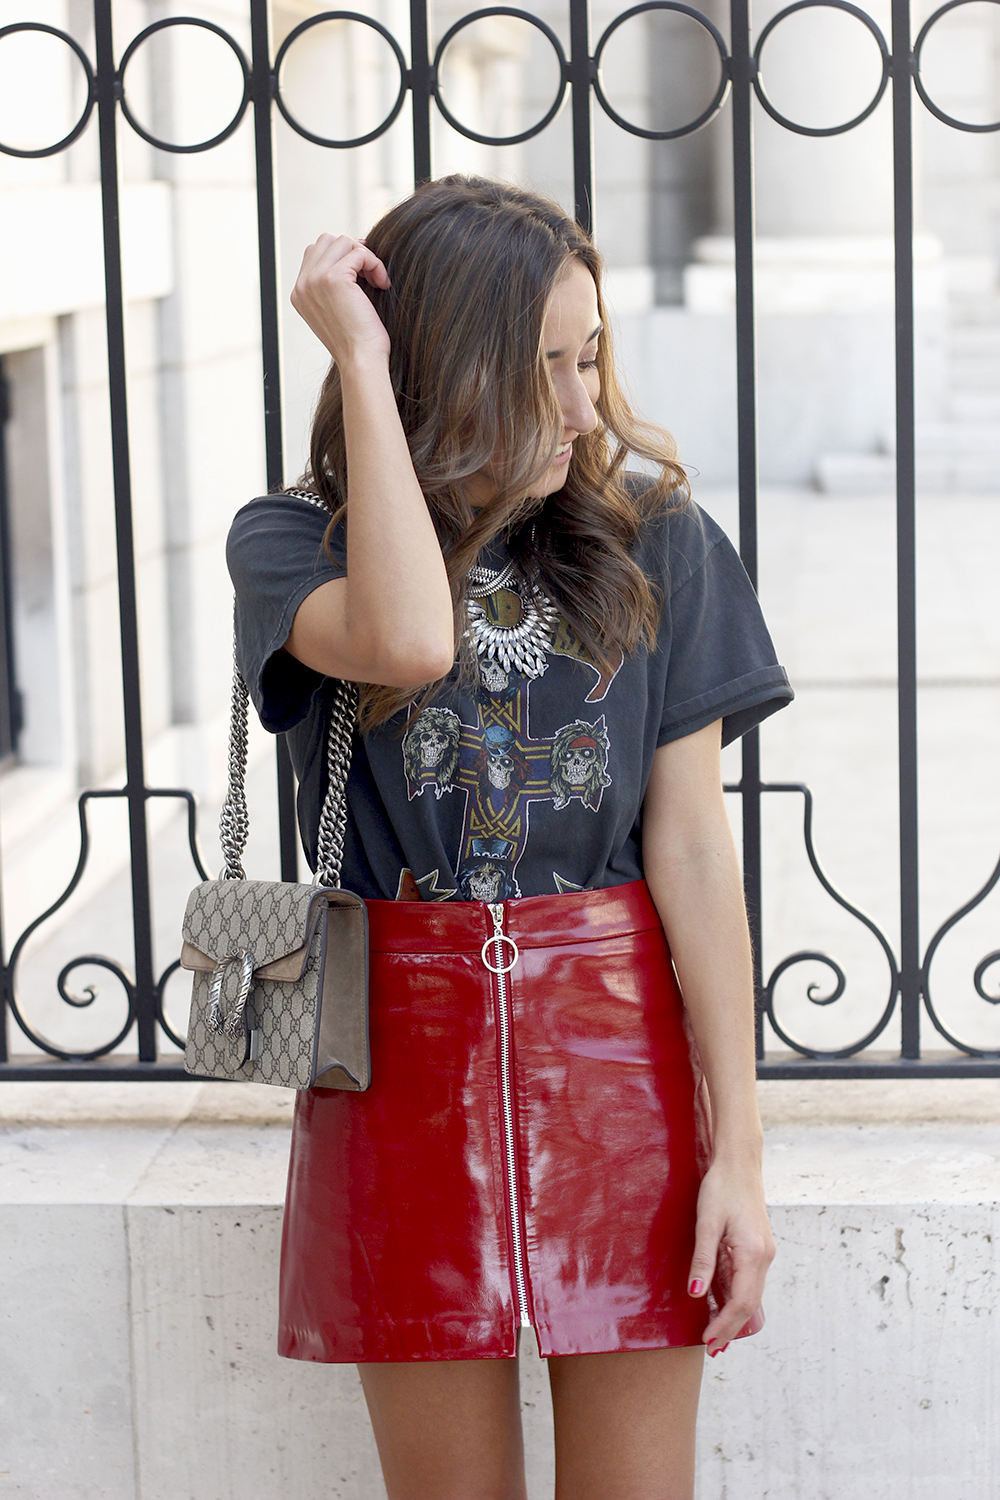 patent leather skirt guns and roses shirt leather jacket heels fashion outfit style18